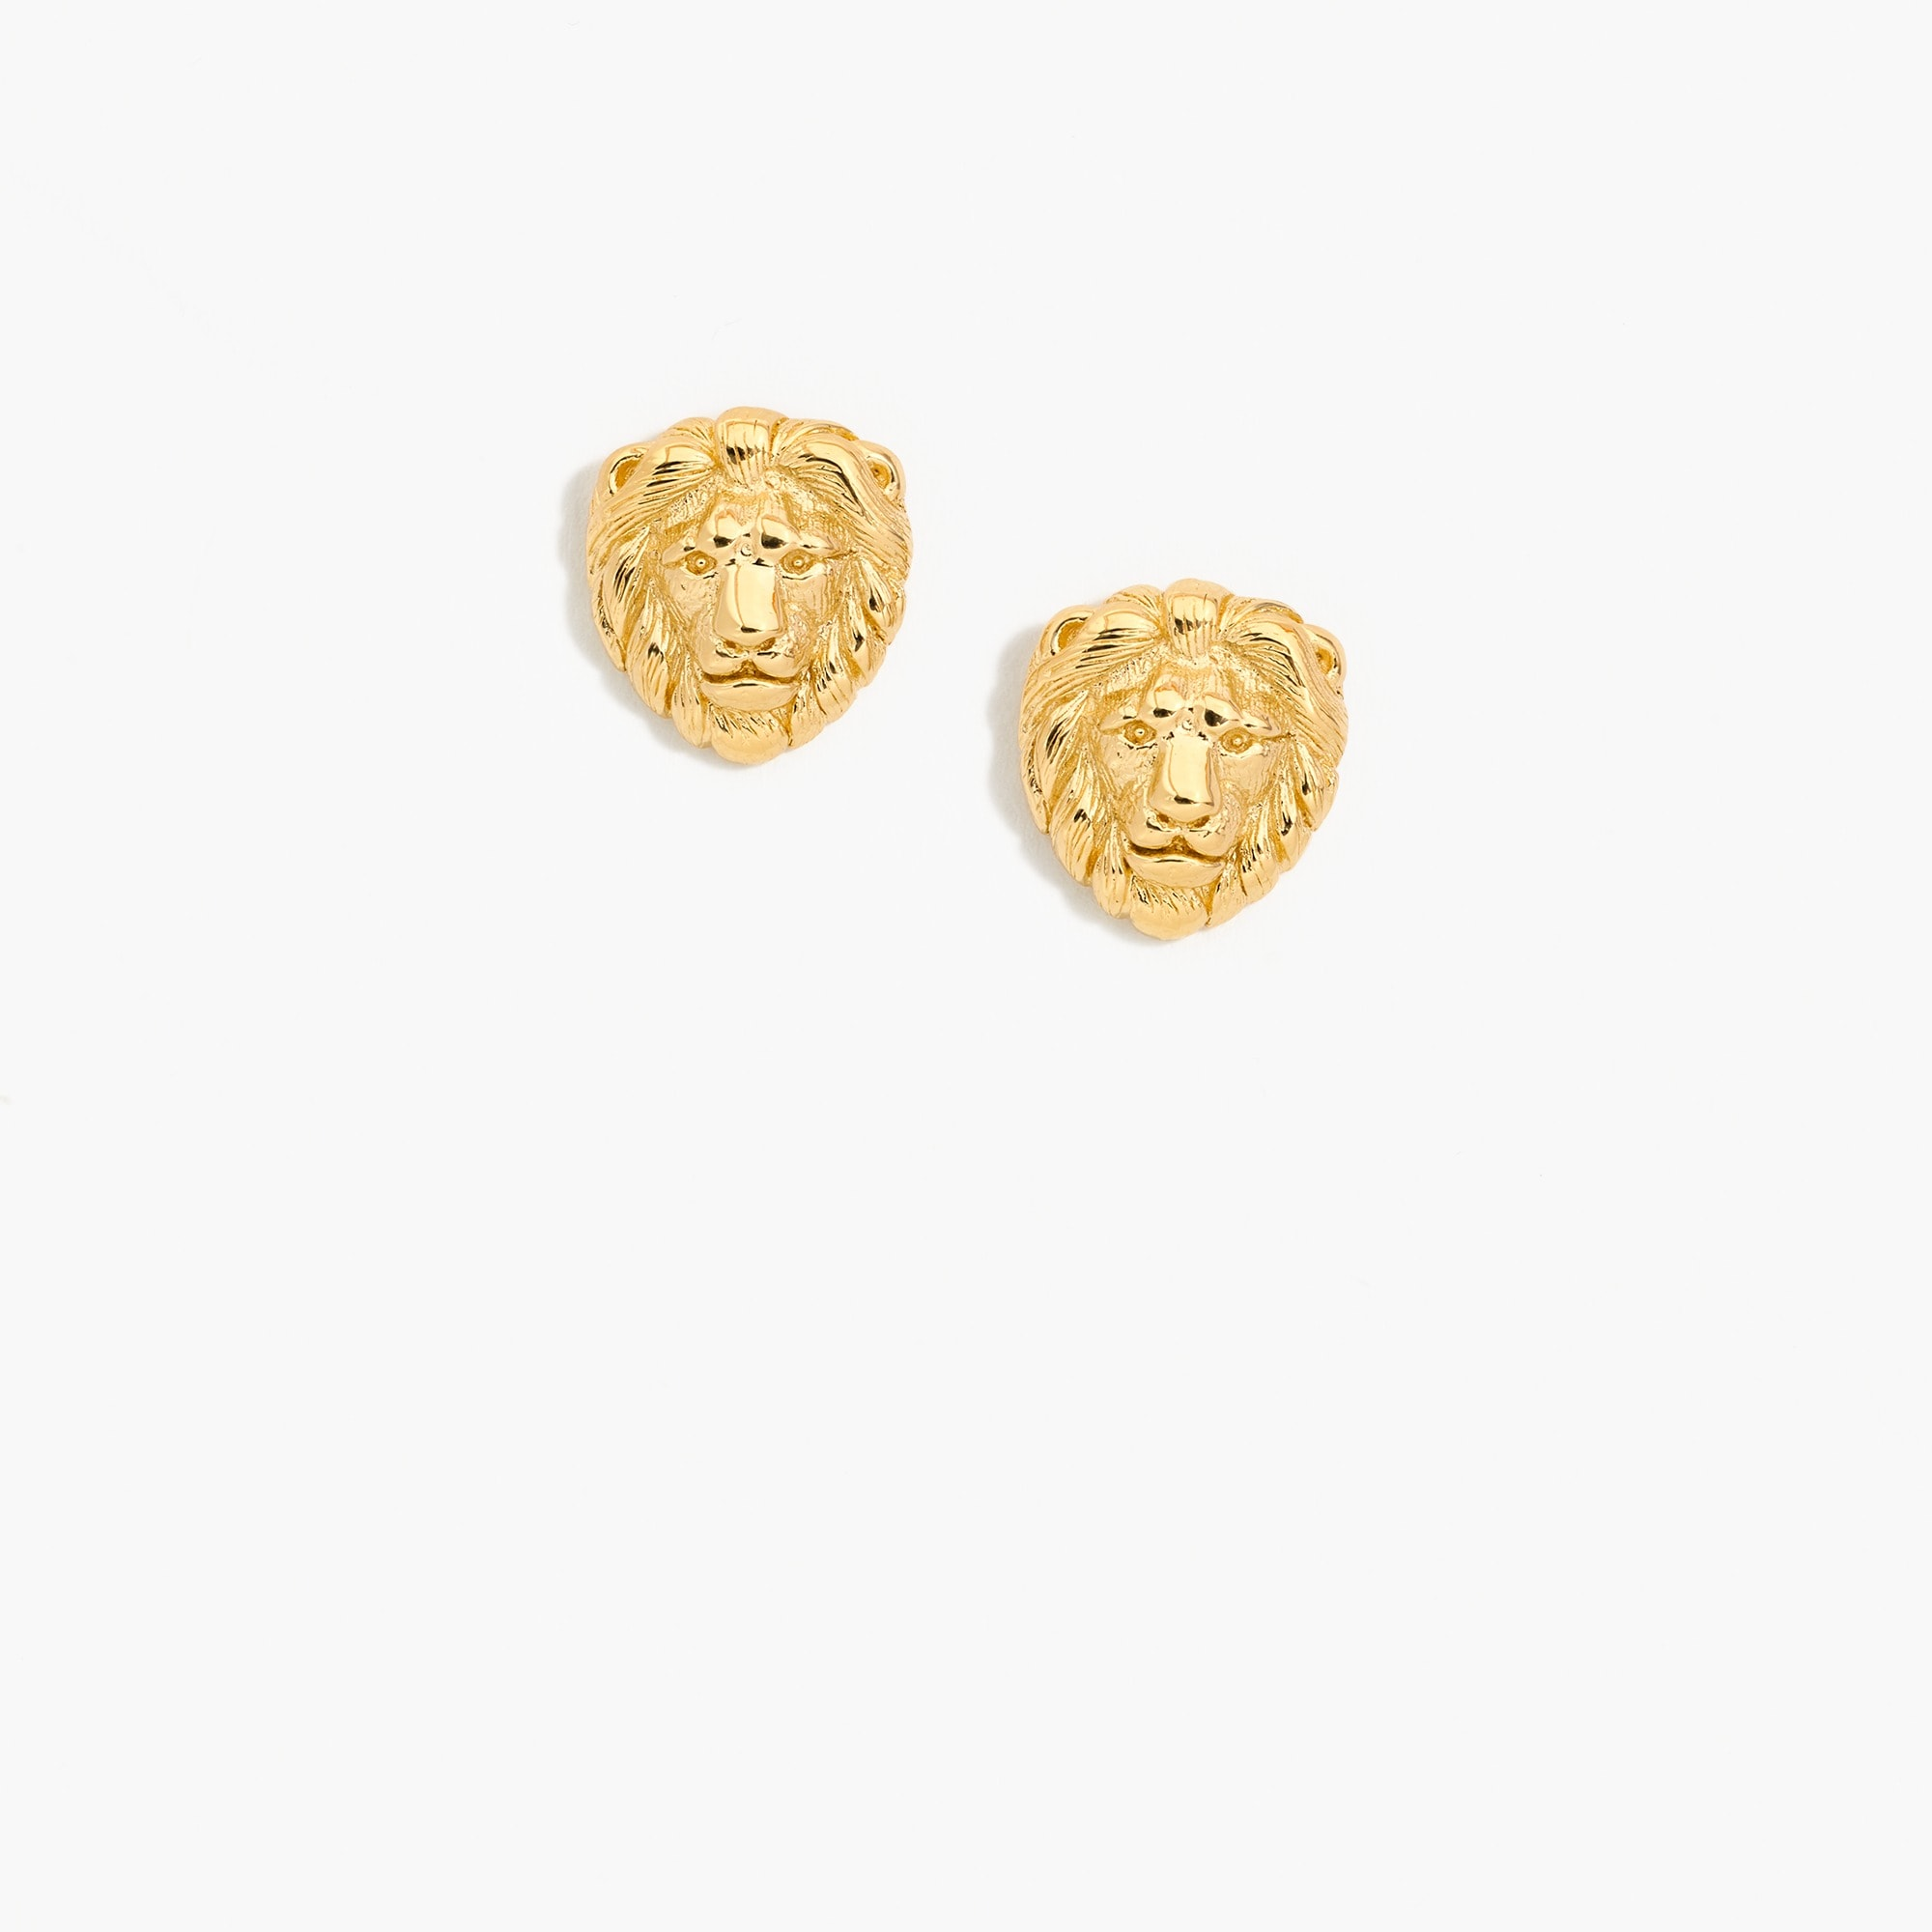 Demi-fine 14k gold-plated lion earrings